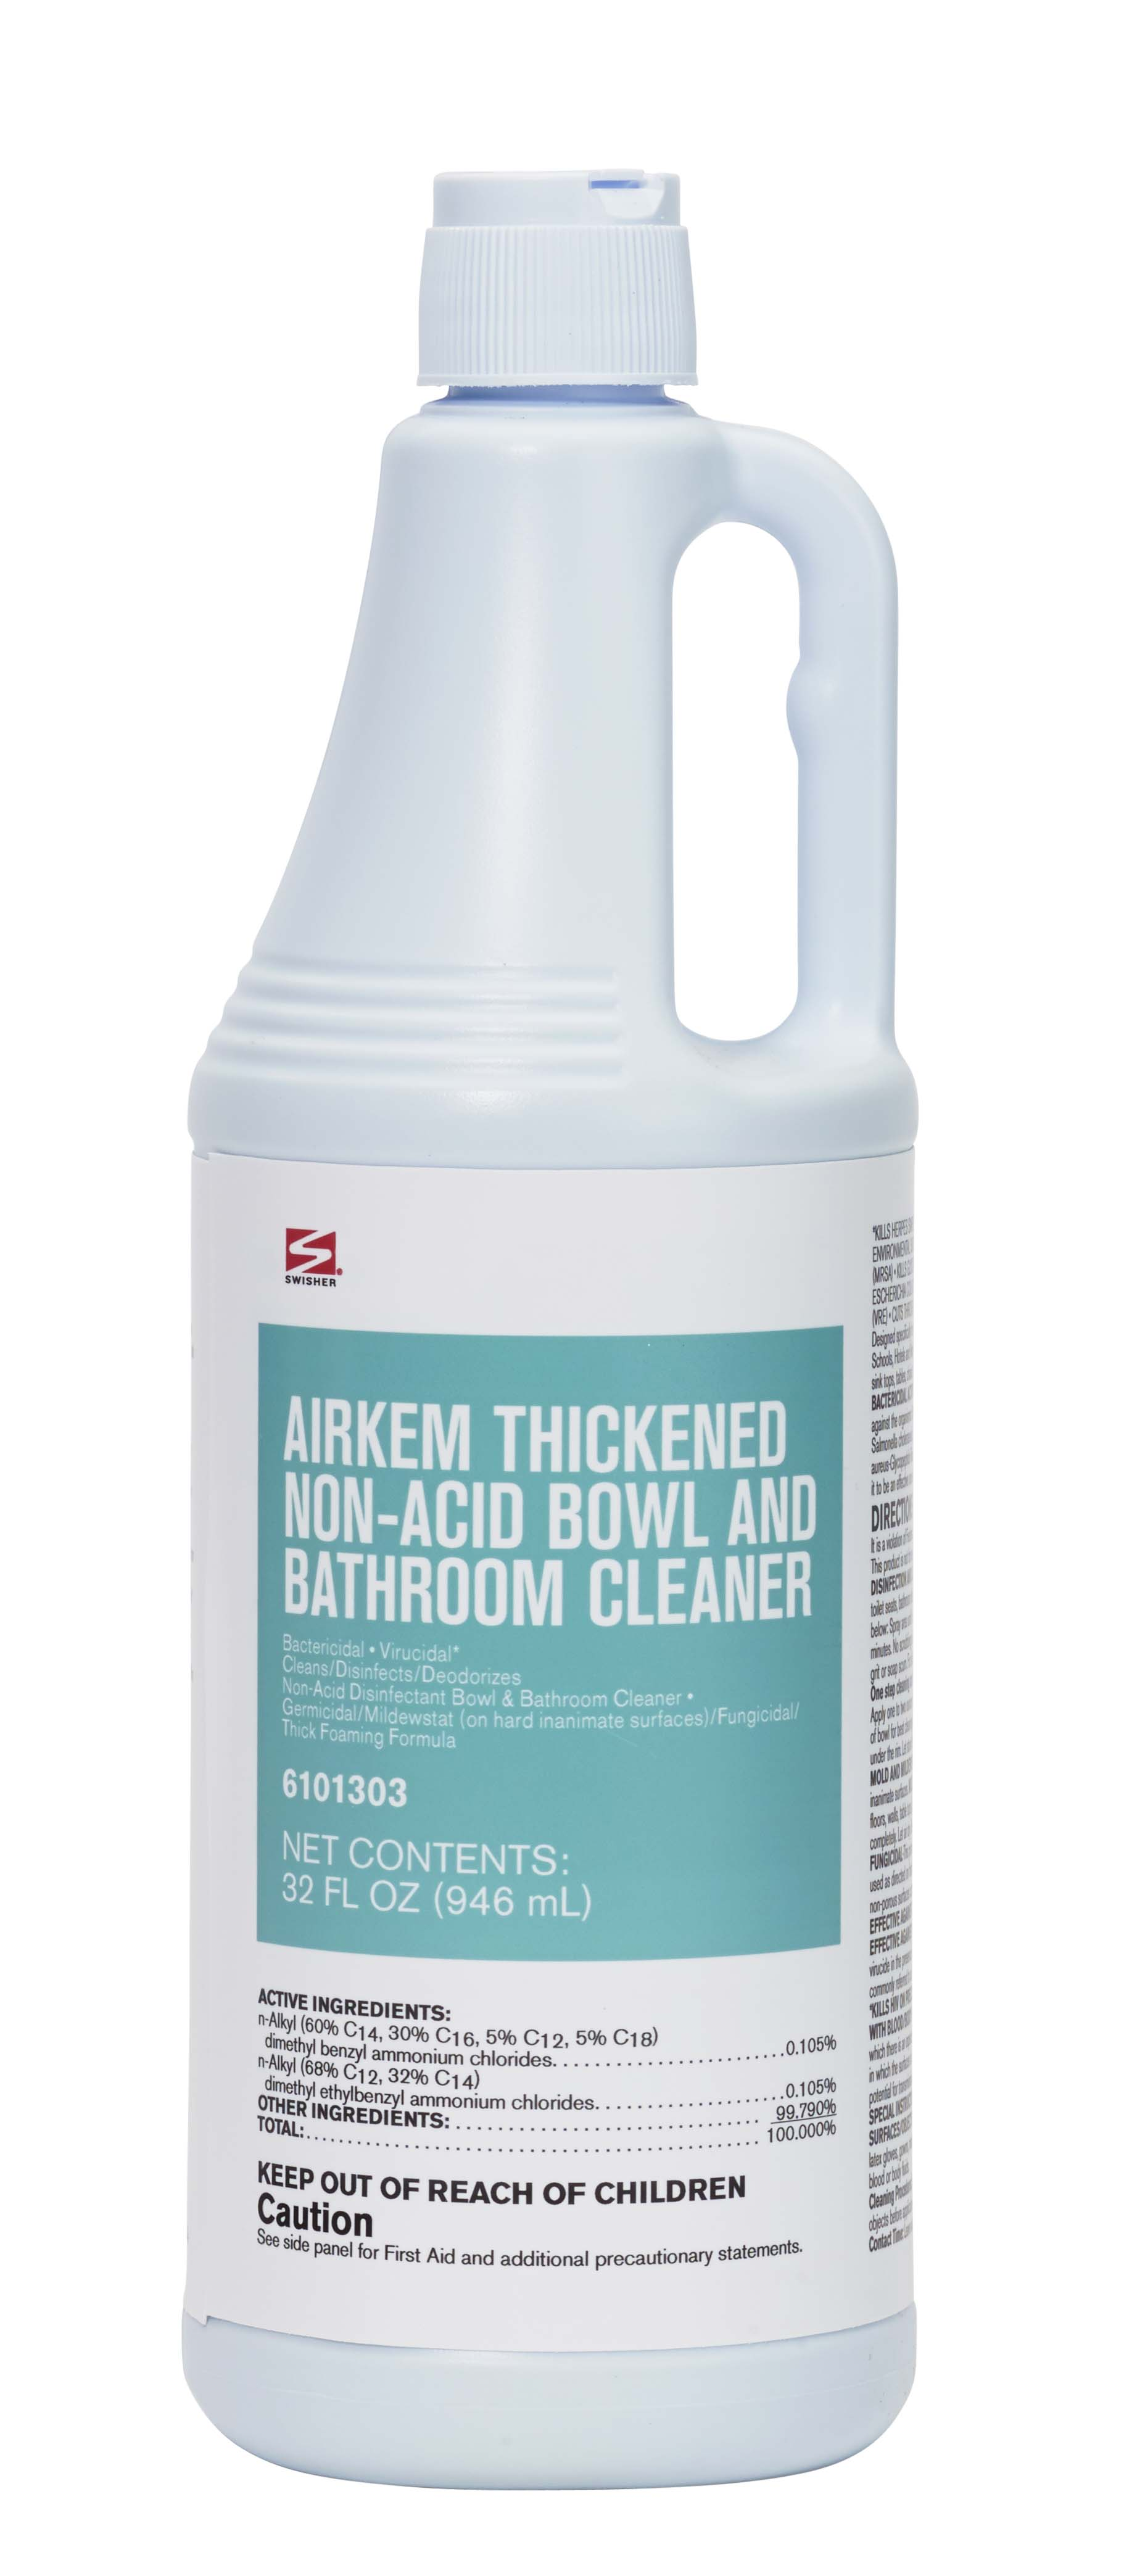 Swisher Airkem Thickened Non Acid BowlBathroom Cleaner